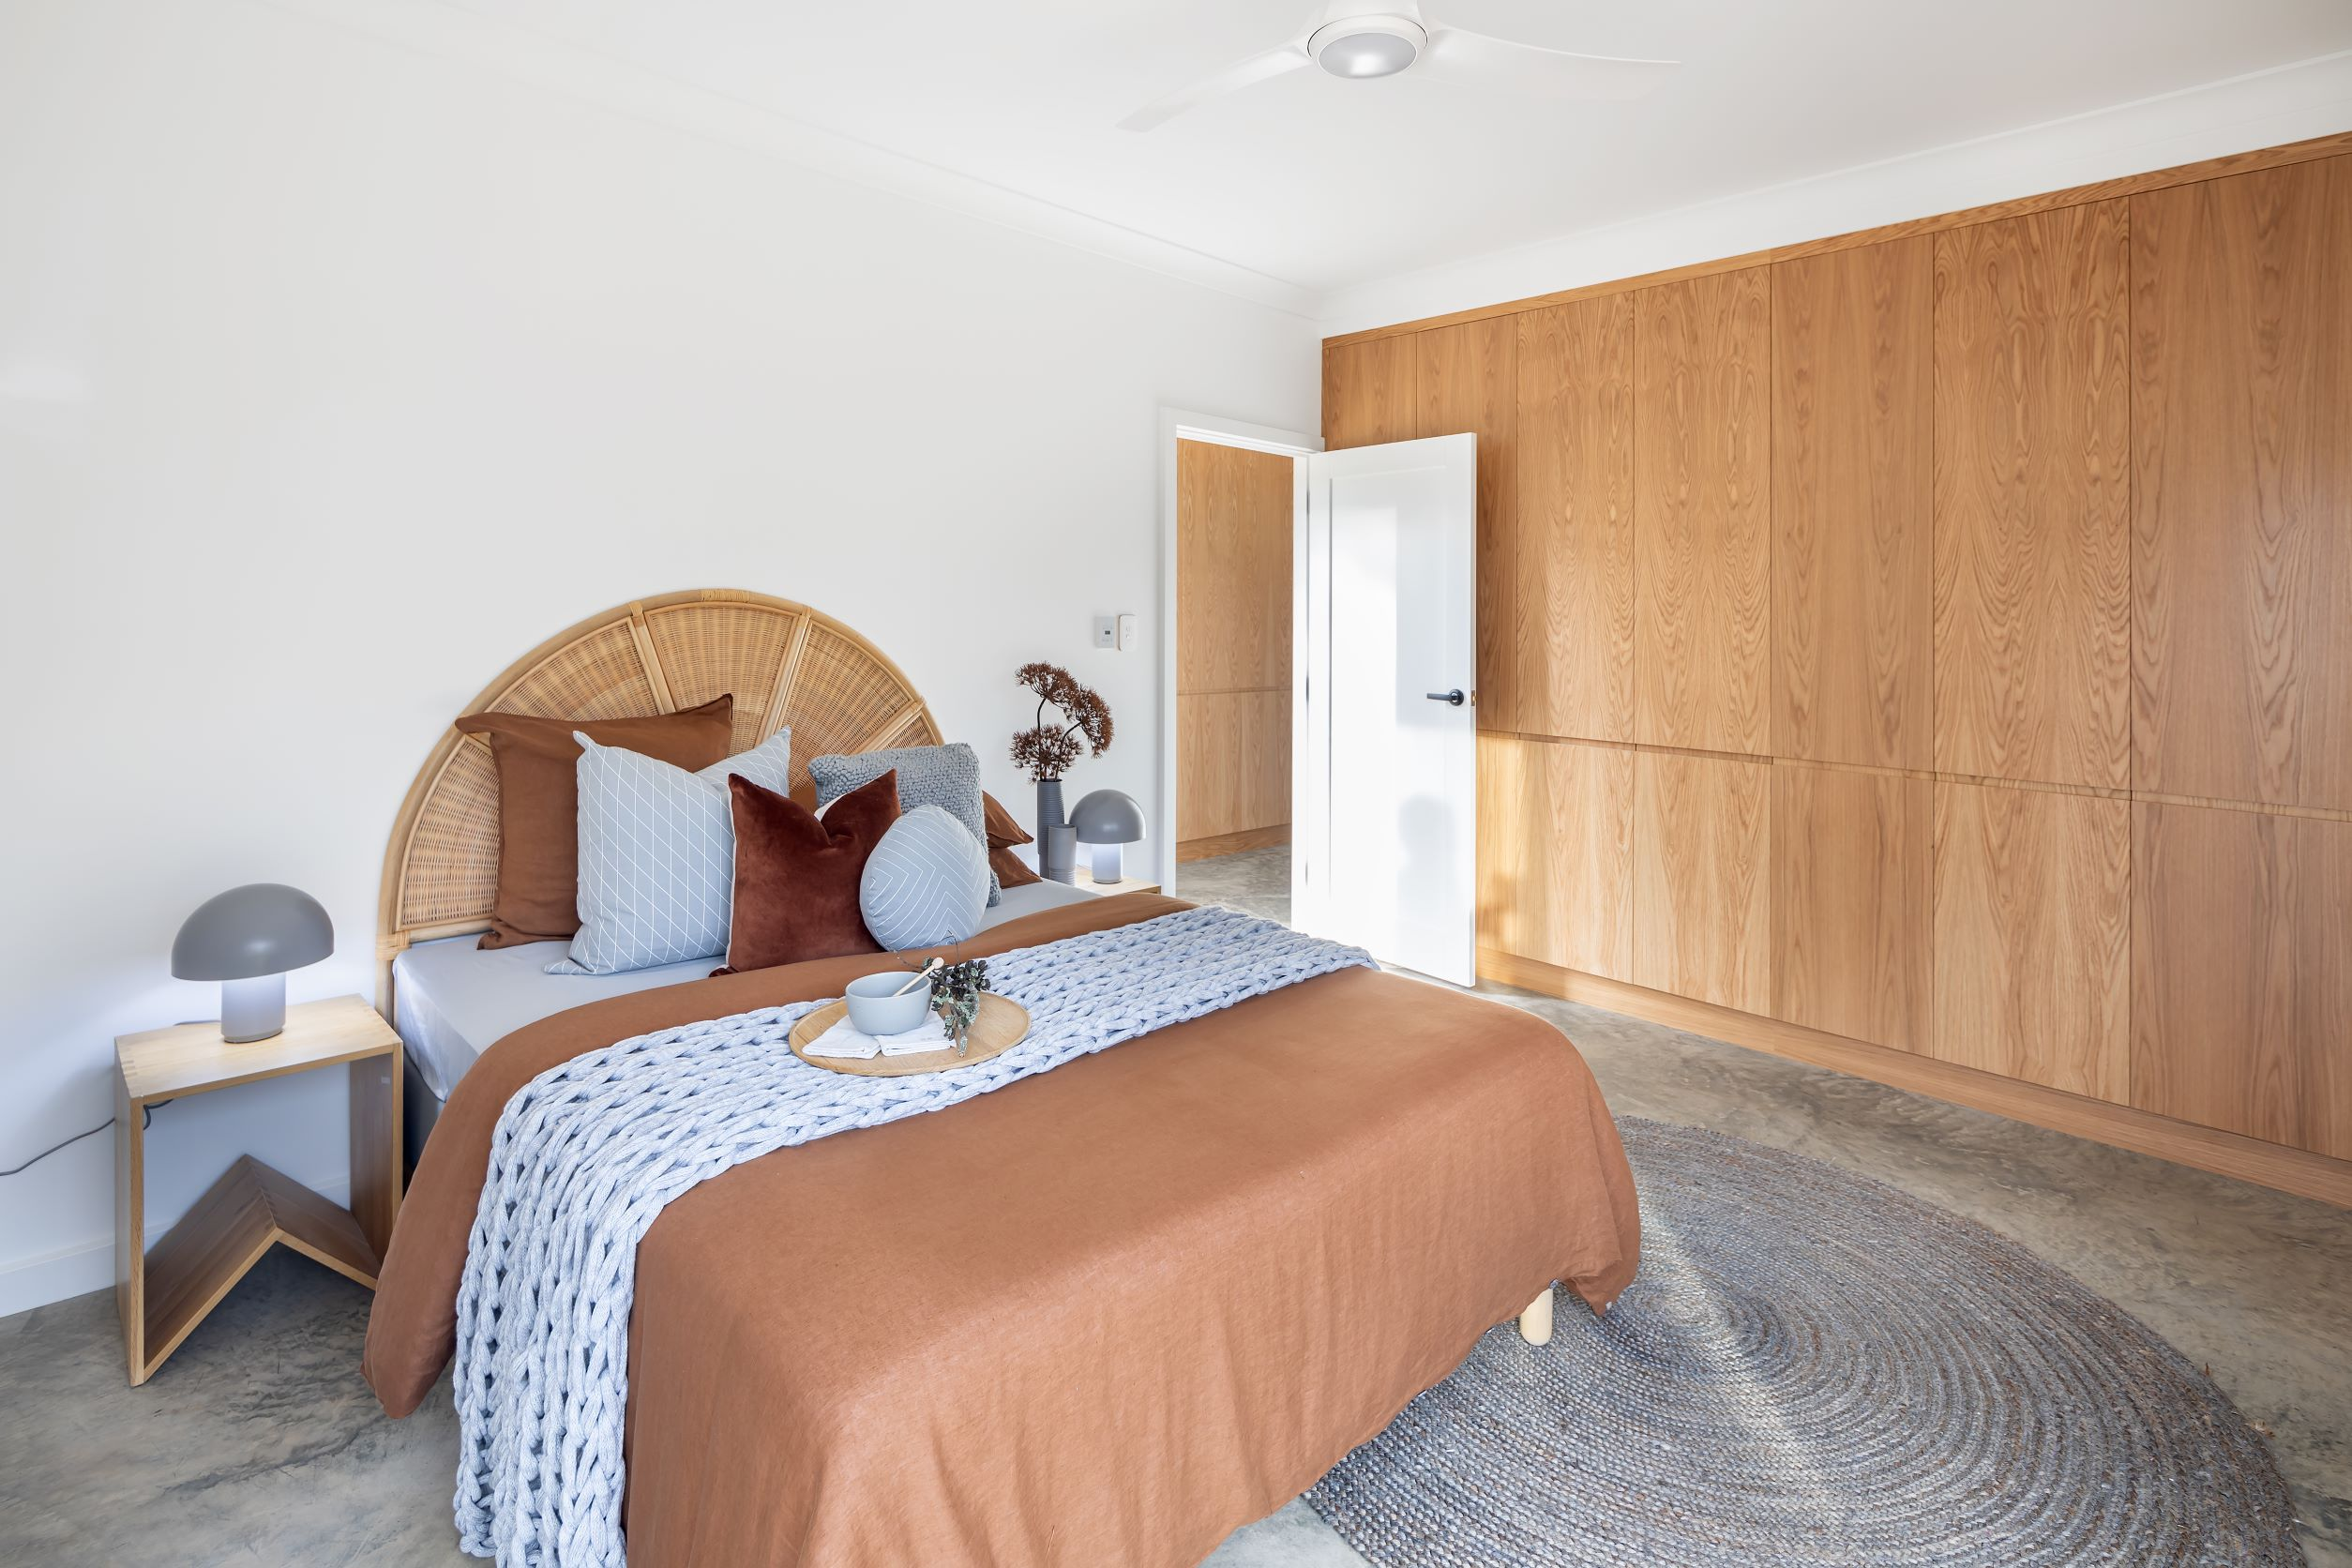 aaron-martin-constructions-dawson-street-project-bedroom-styling